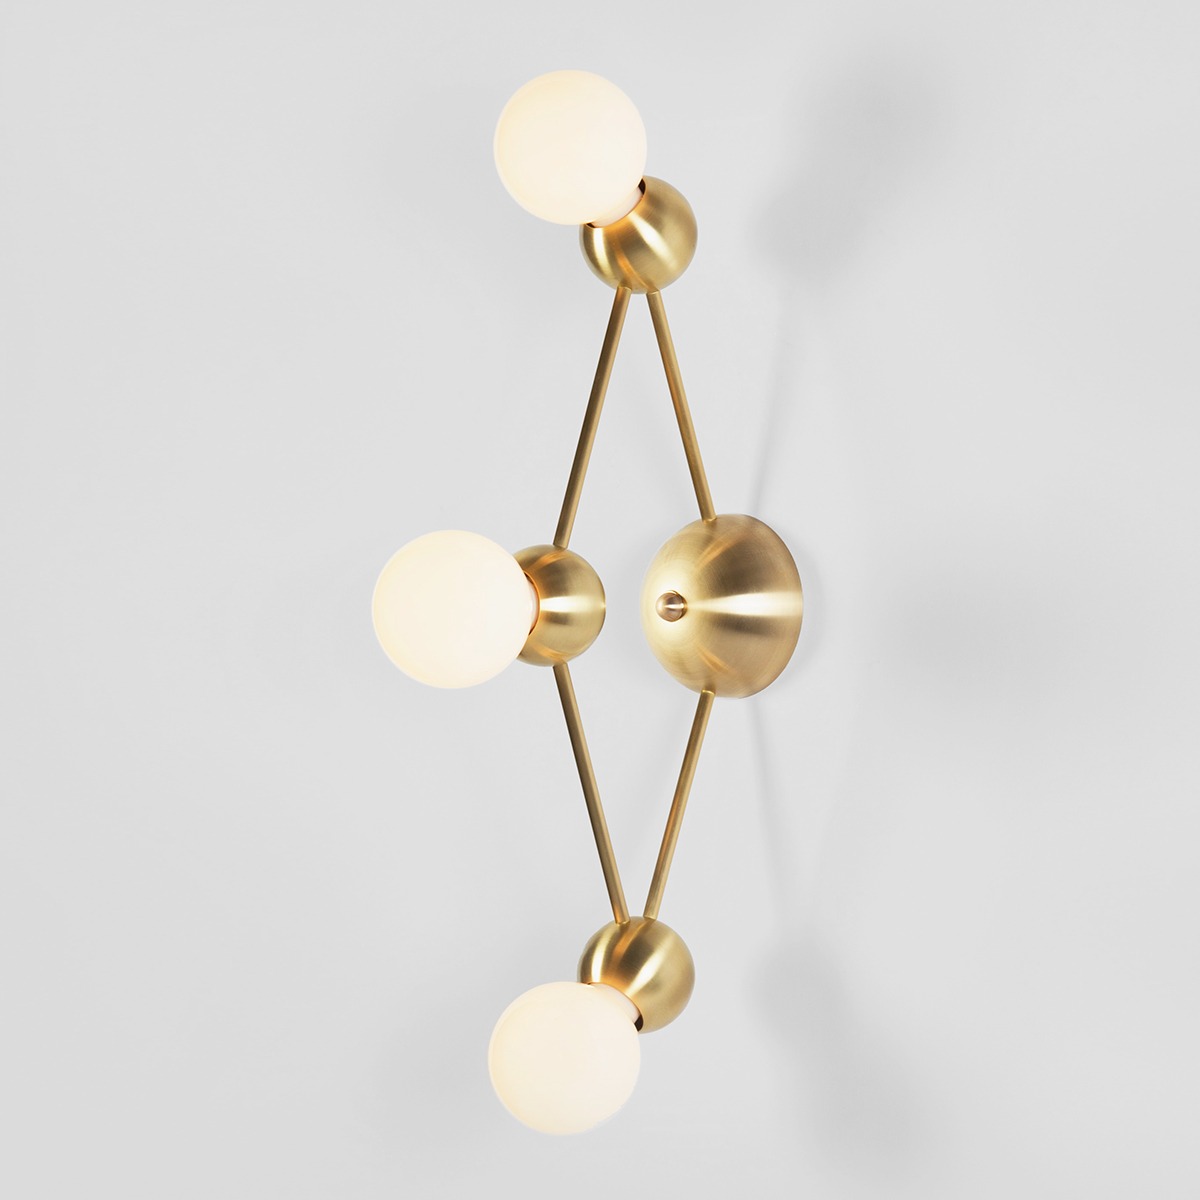 LINA 03-LIGHT DIAMOND SCONCE    See Lina series